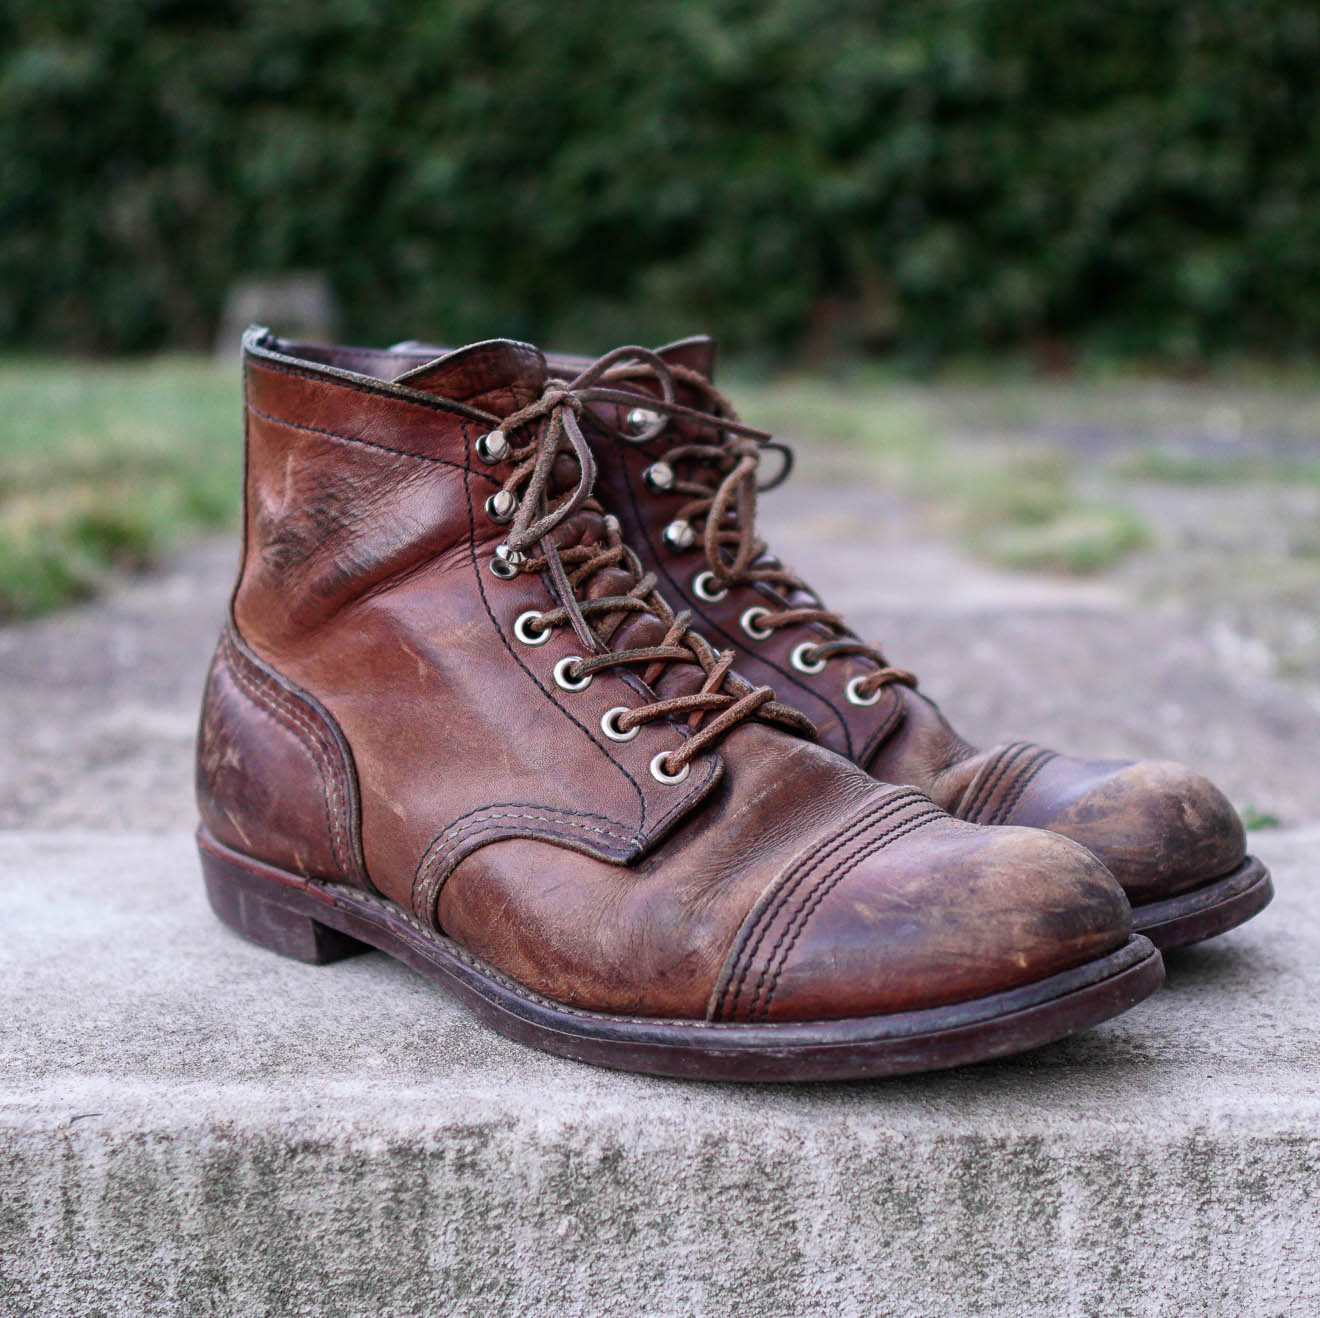 The Denim & Boots Podcast, podcast, iTunes, Apple Podcast, Red Wing, Red Wing Heritage, 8111, Iron Ranger, Amber Harness,